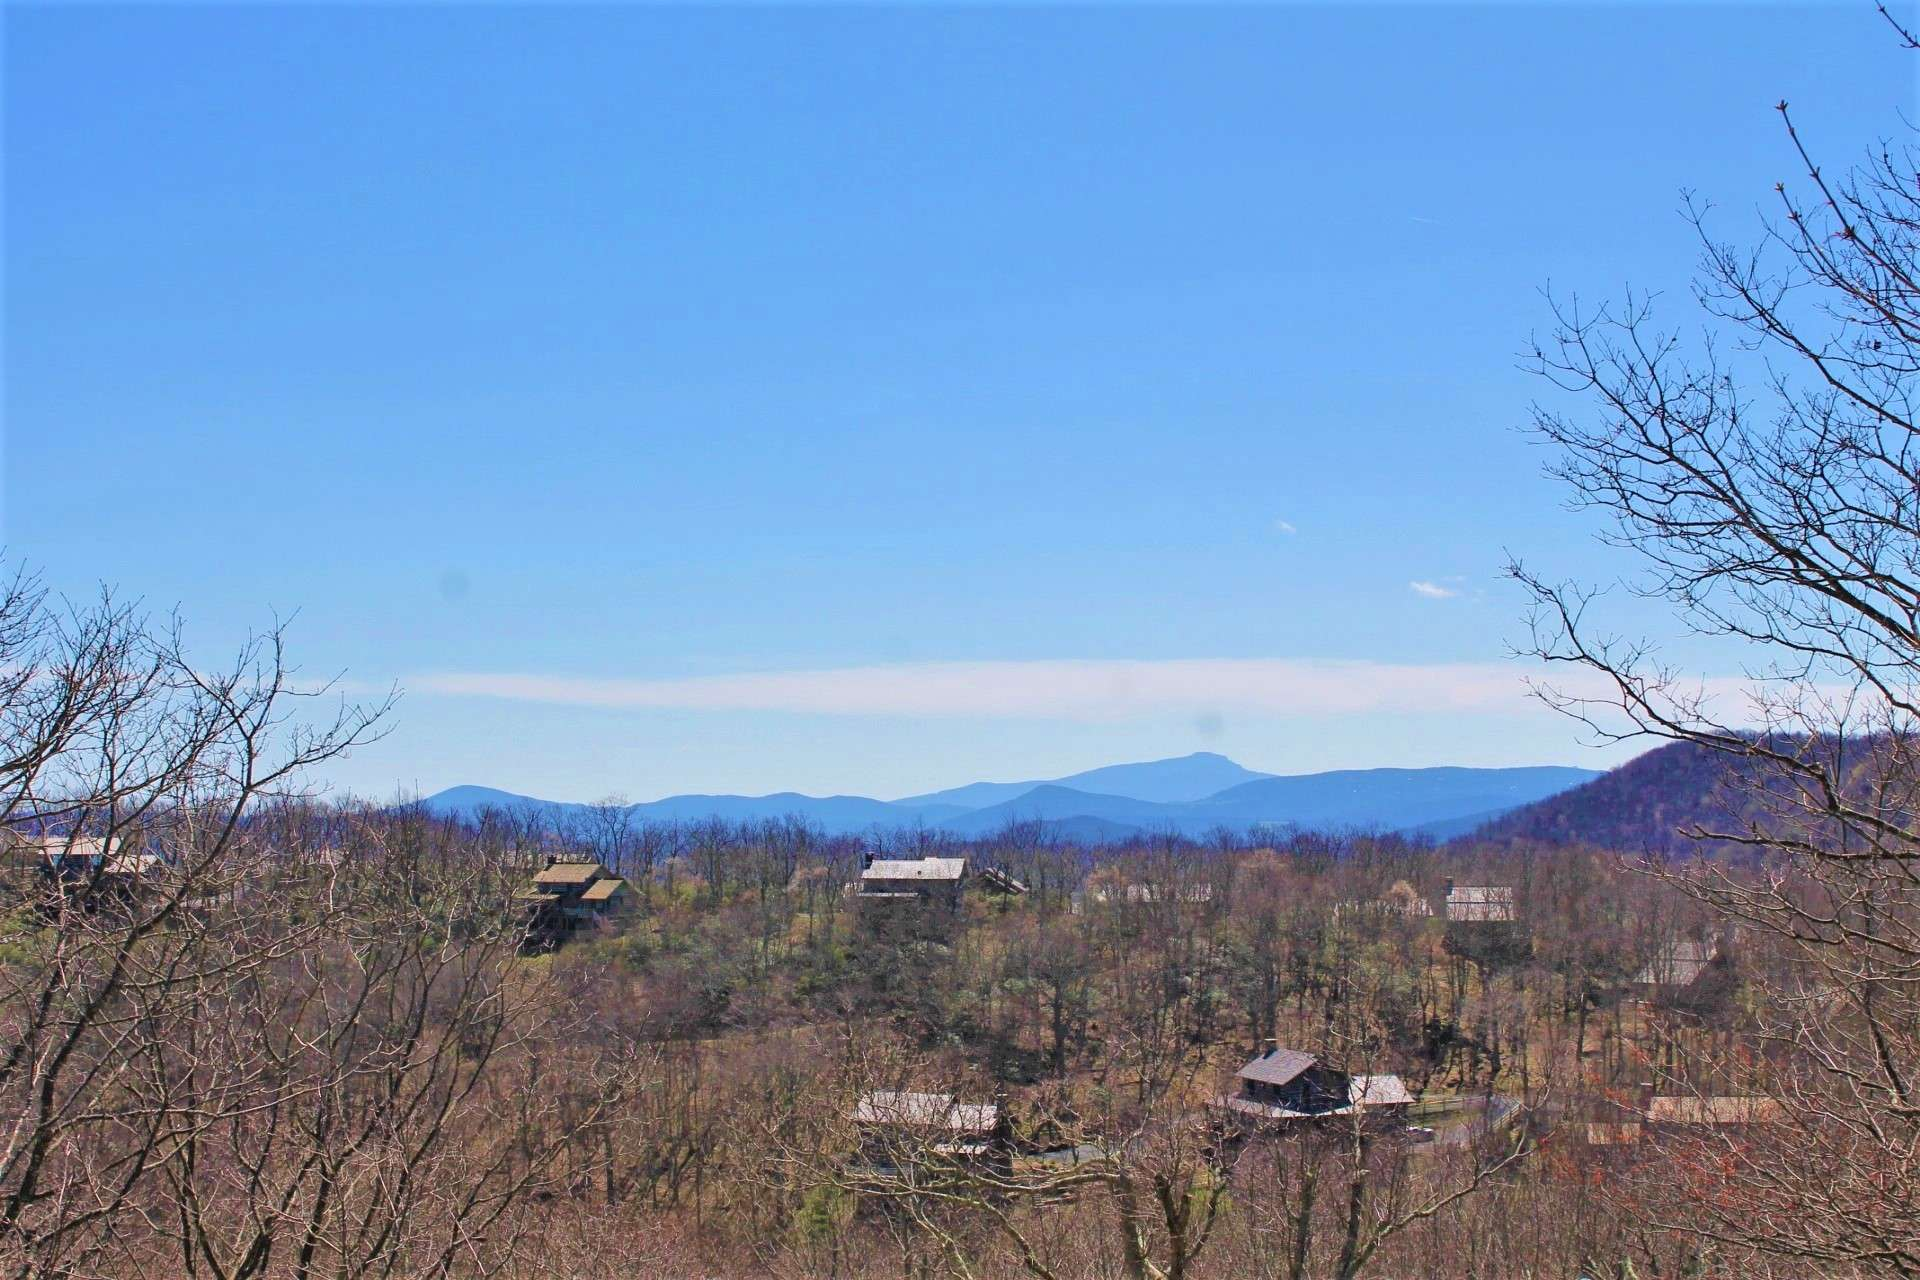 Watch the seasons unfold with Grandfather Mountain in the not too far distance.